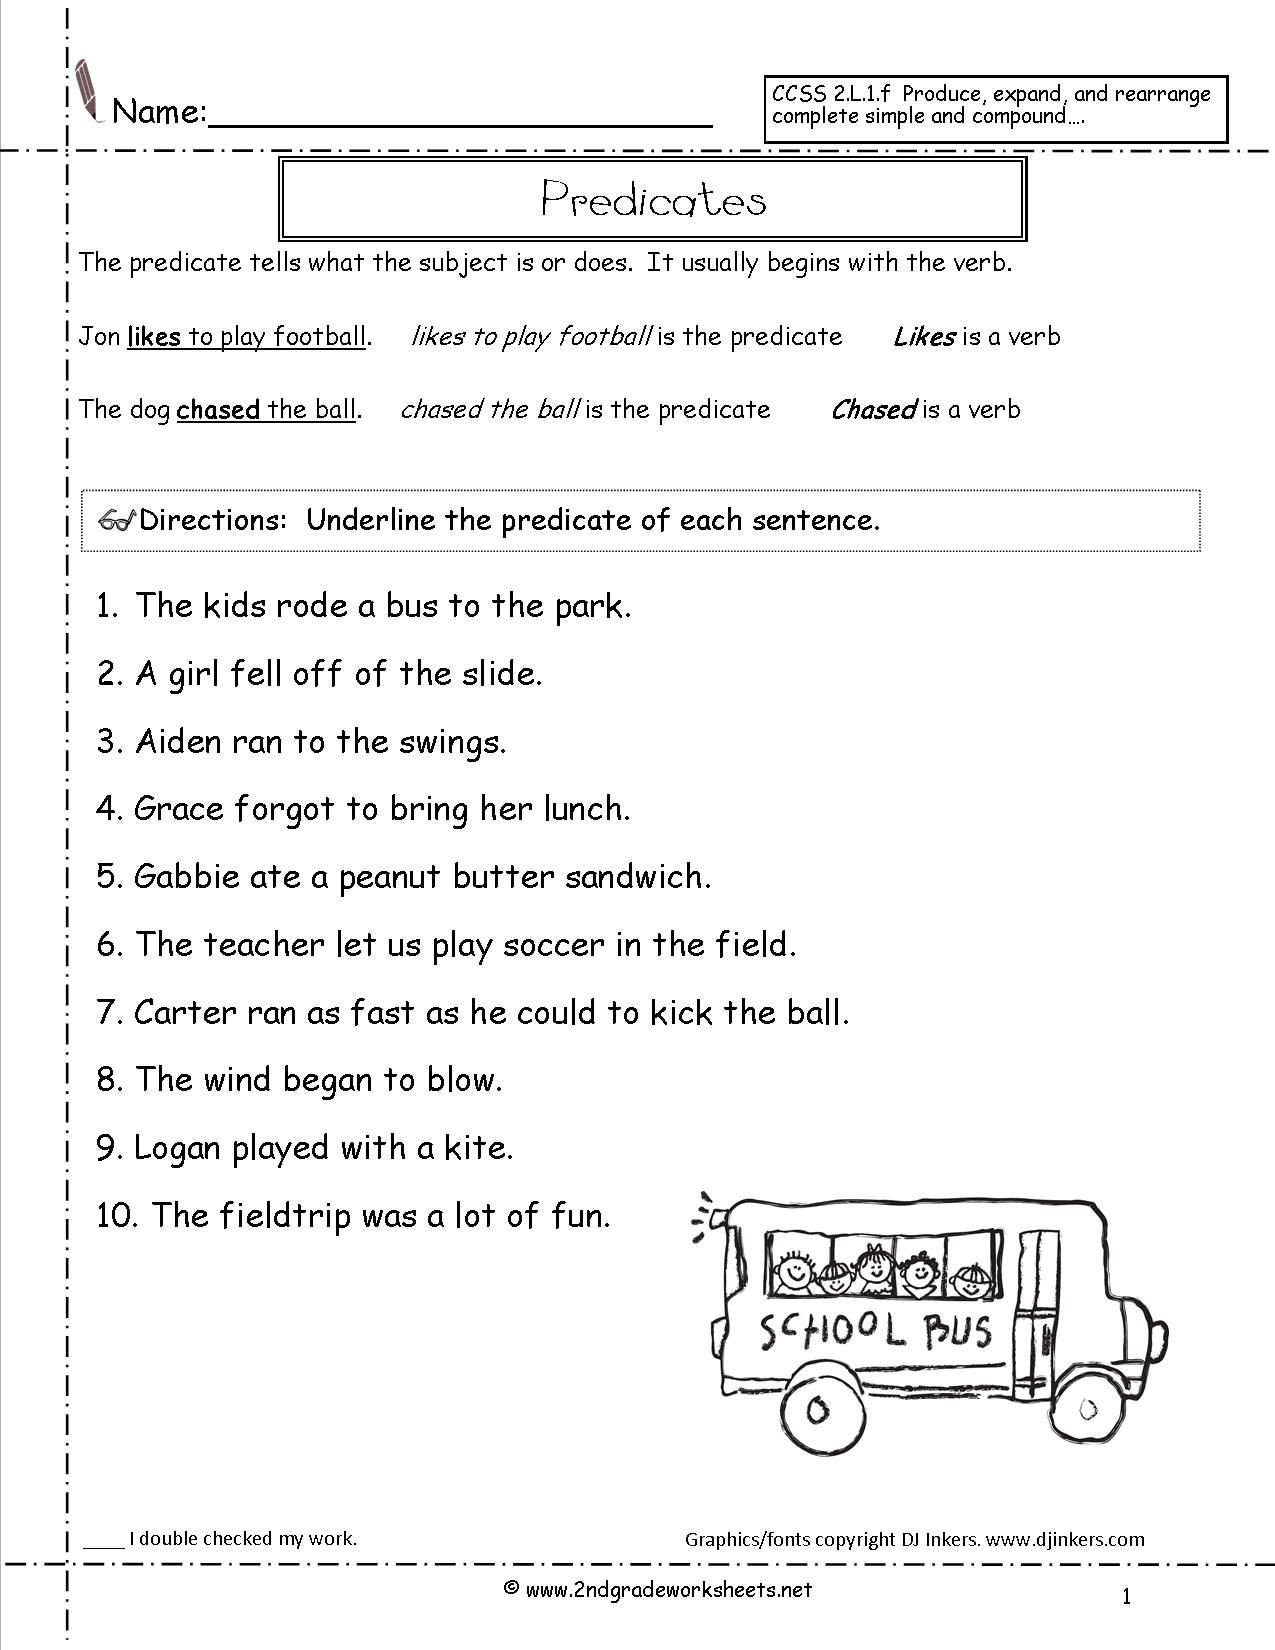 Complete Sentence Worksheets 3rd Grade Subject and Predicate Sentences Worksheets for 3rd